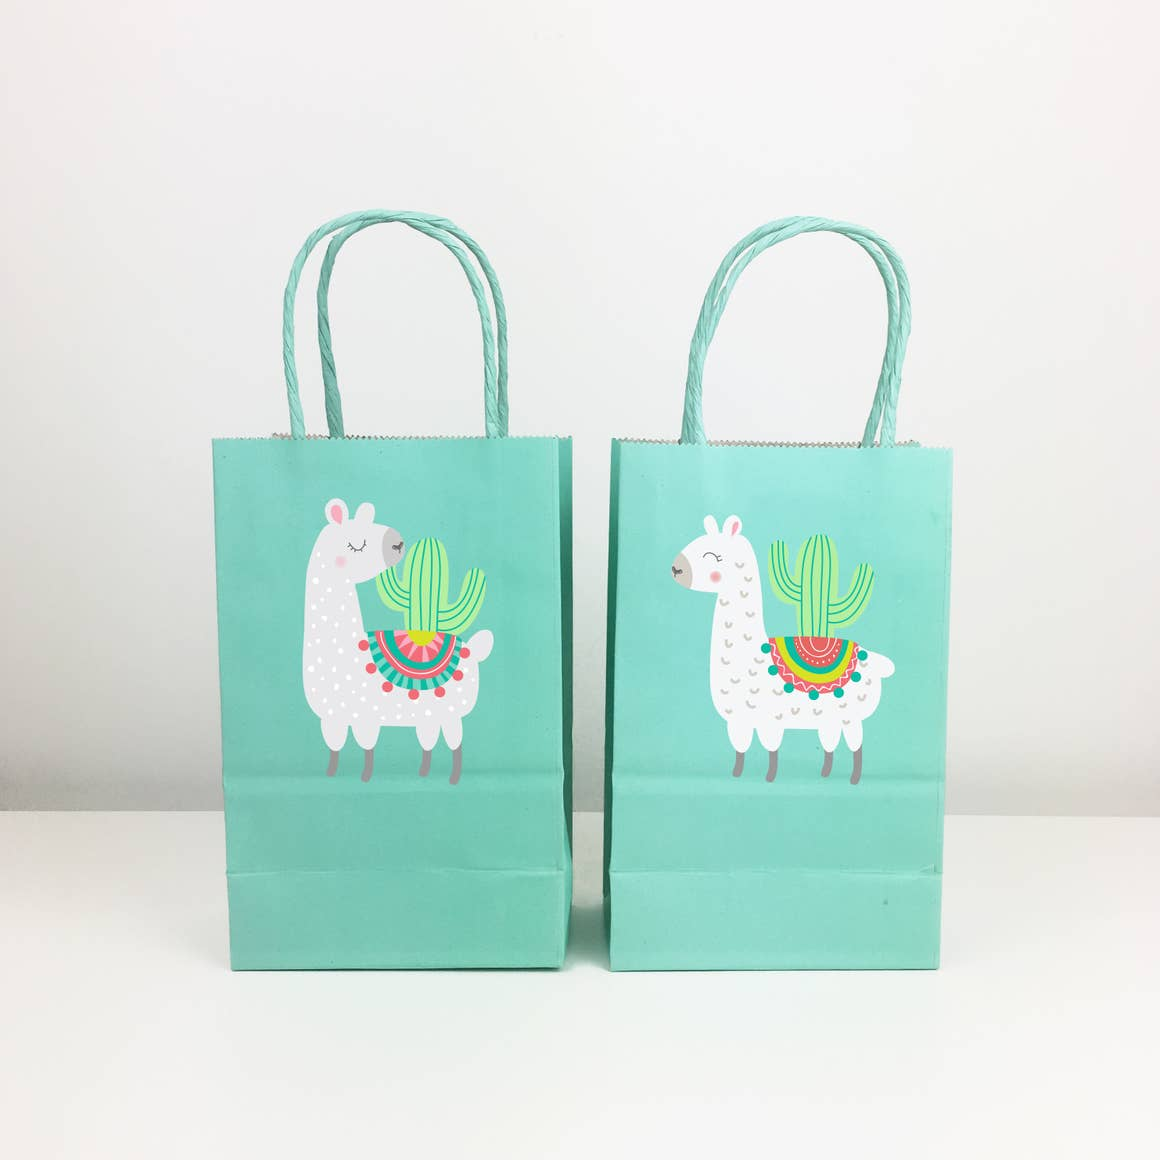 Llama and Cactus - Gift Bag Stickers